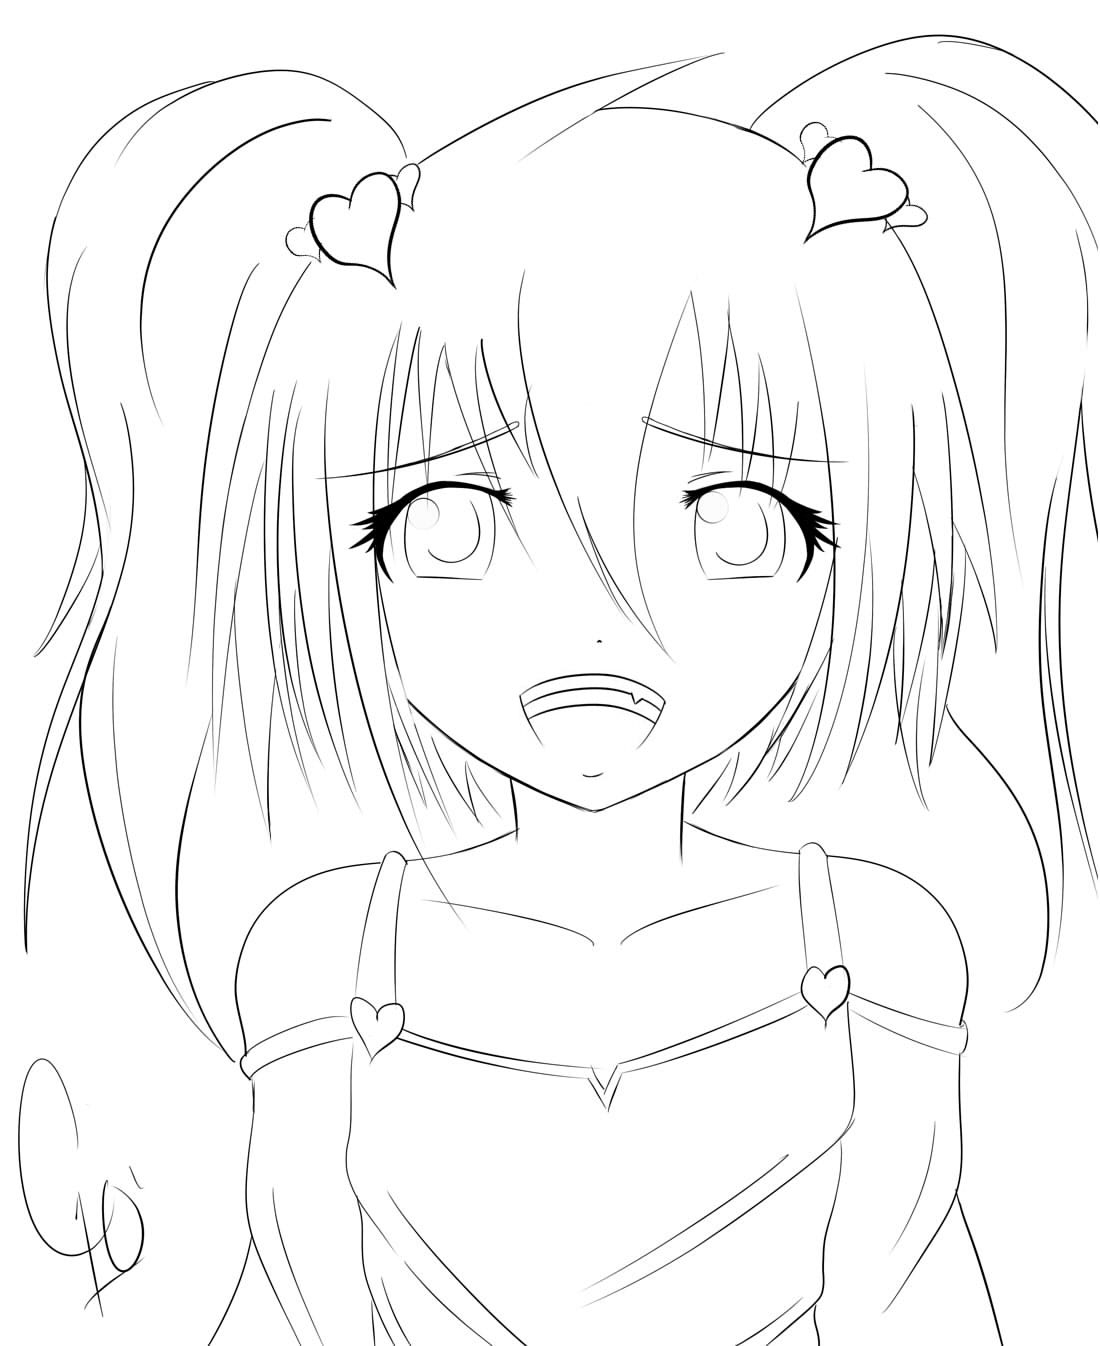 1100x1346 Pencil Drawn Anime Characters Body Outline Pencil Drawn Anime